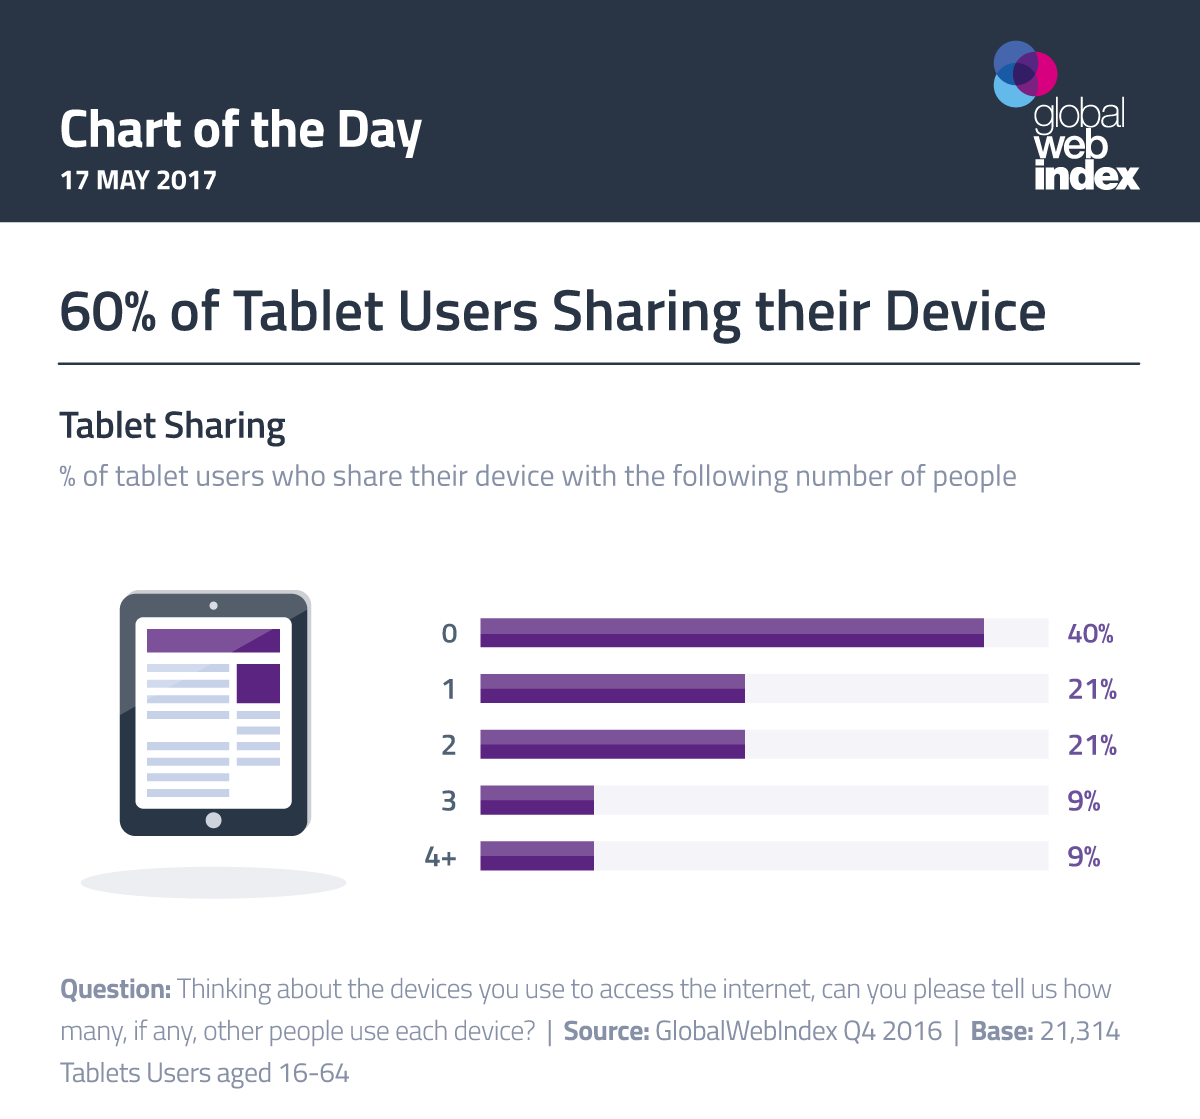 60% of Tablet Users Sharing their Device